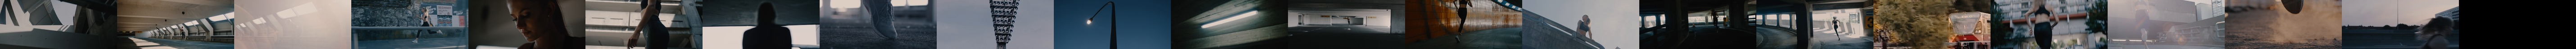 A series of frames from this video